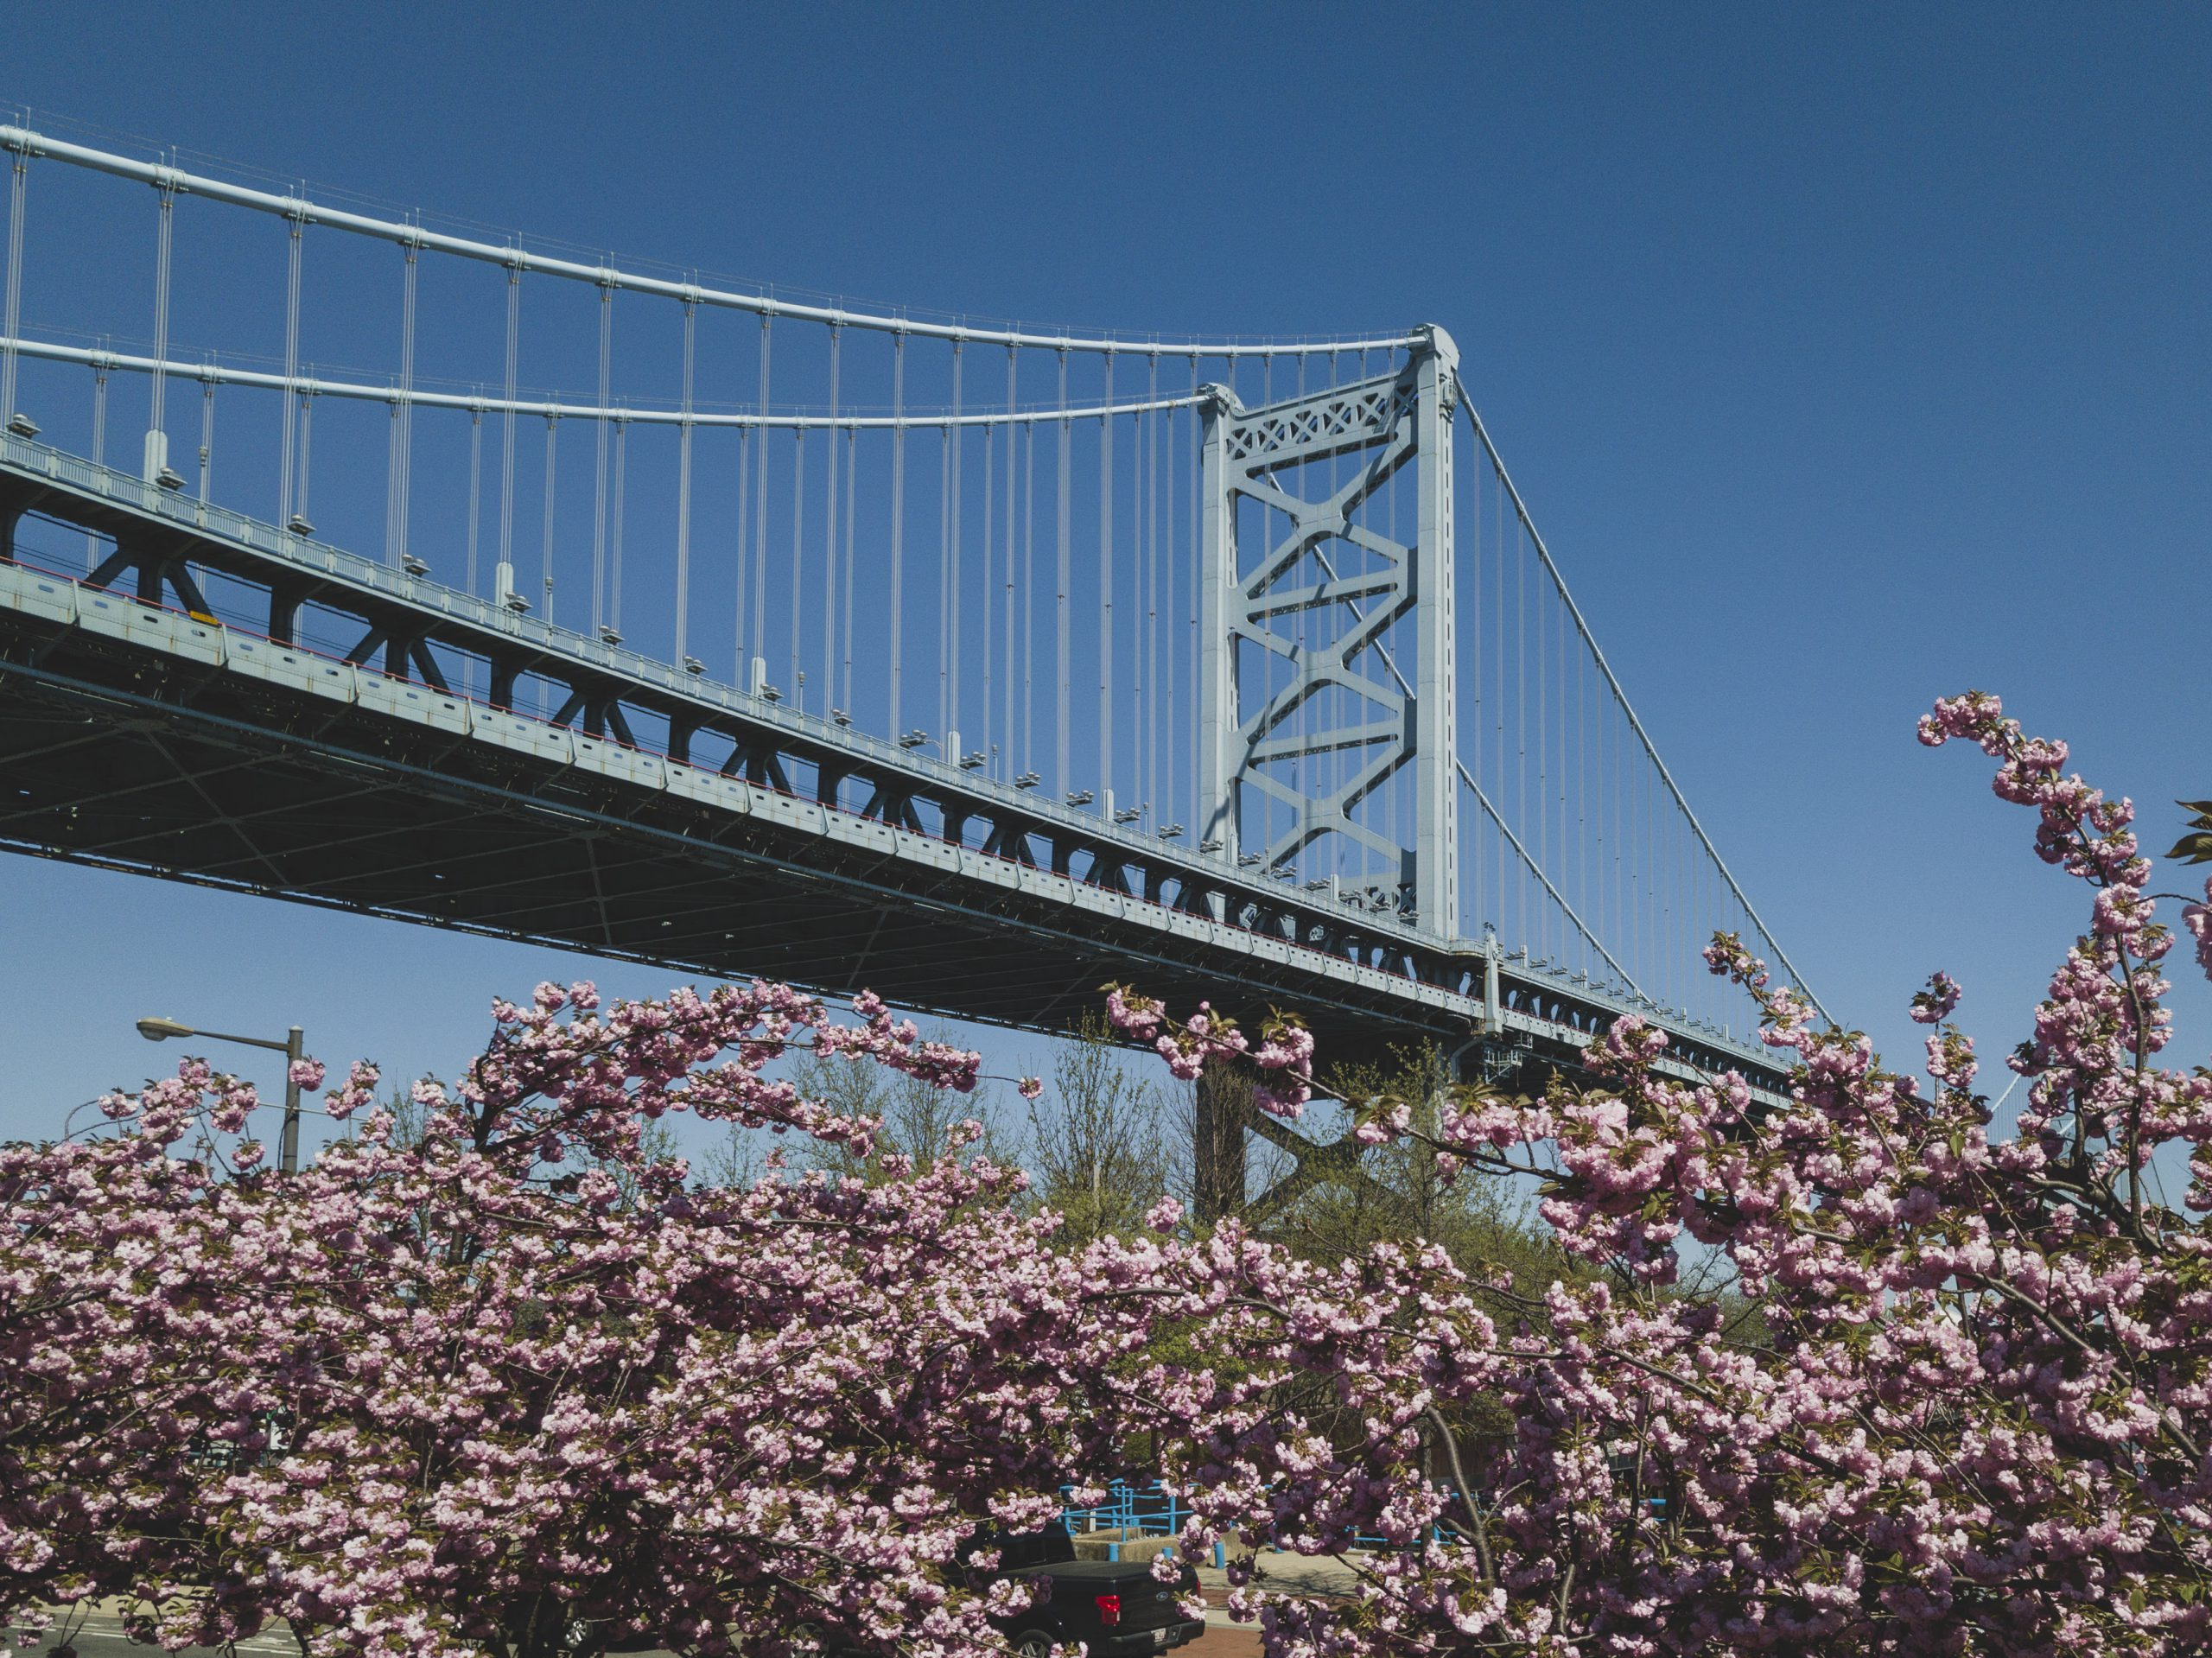 Real Estate With Heart showing the  Benjamin Franklin Bridge in Philadelphia, Pennsylvania (PA), USA. Cherry Blossoms are in the foreground on the riverfront of the Delaware River in Philadelphia where Real Estate with Heart provides real estate brokerage services for Compass Real Estate for home buyers and sellers.